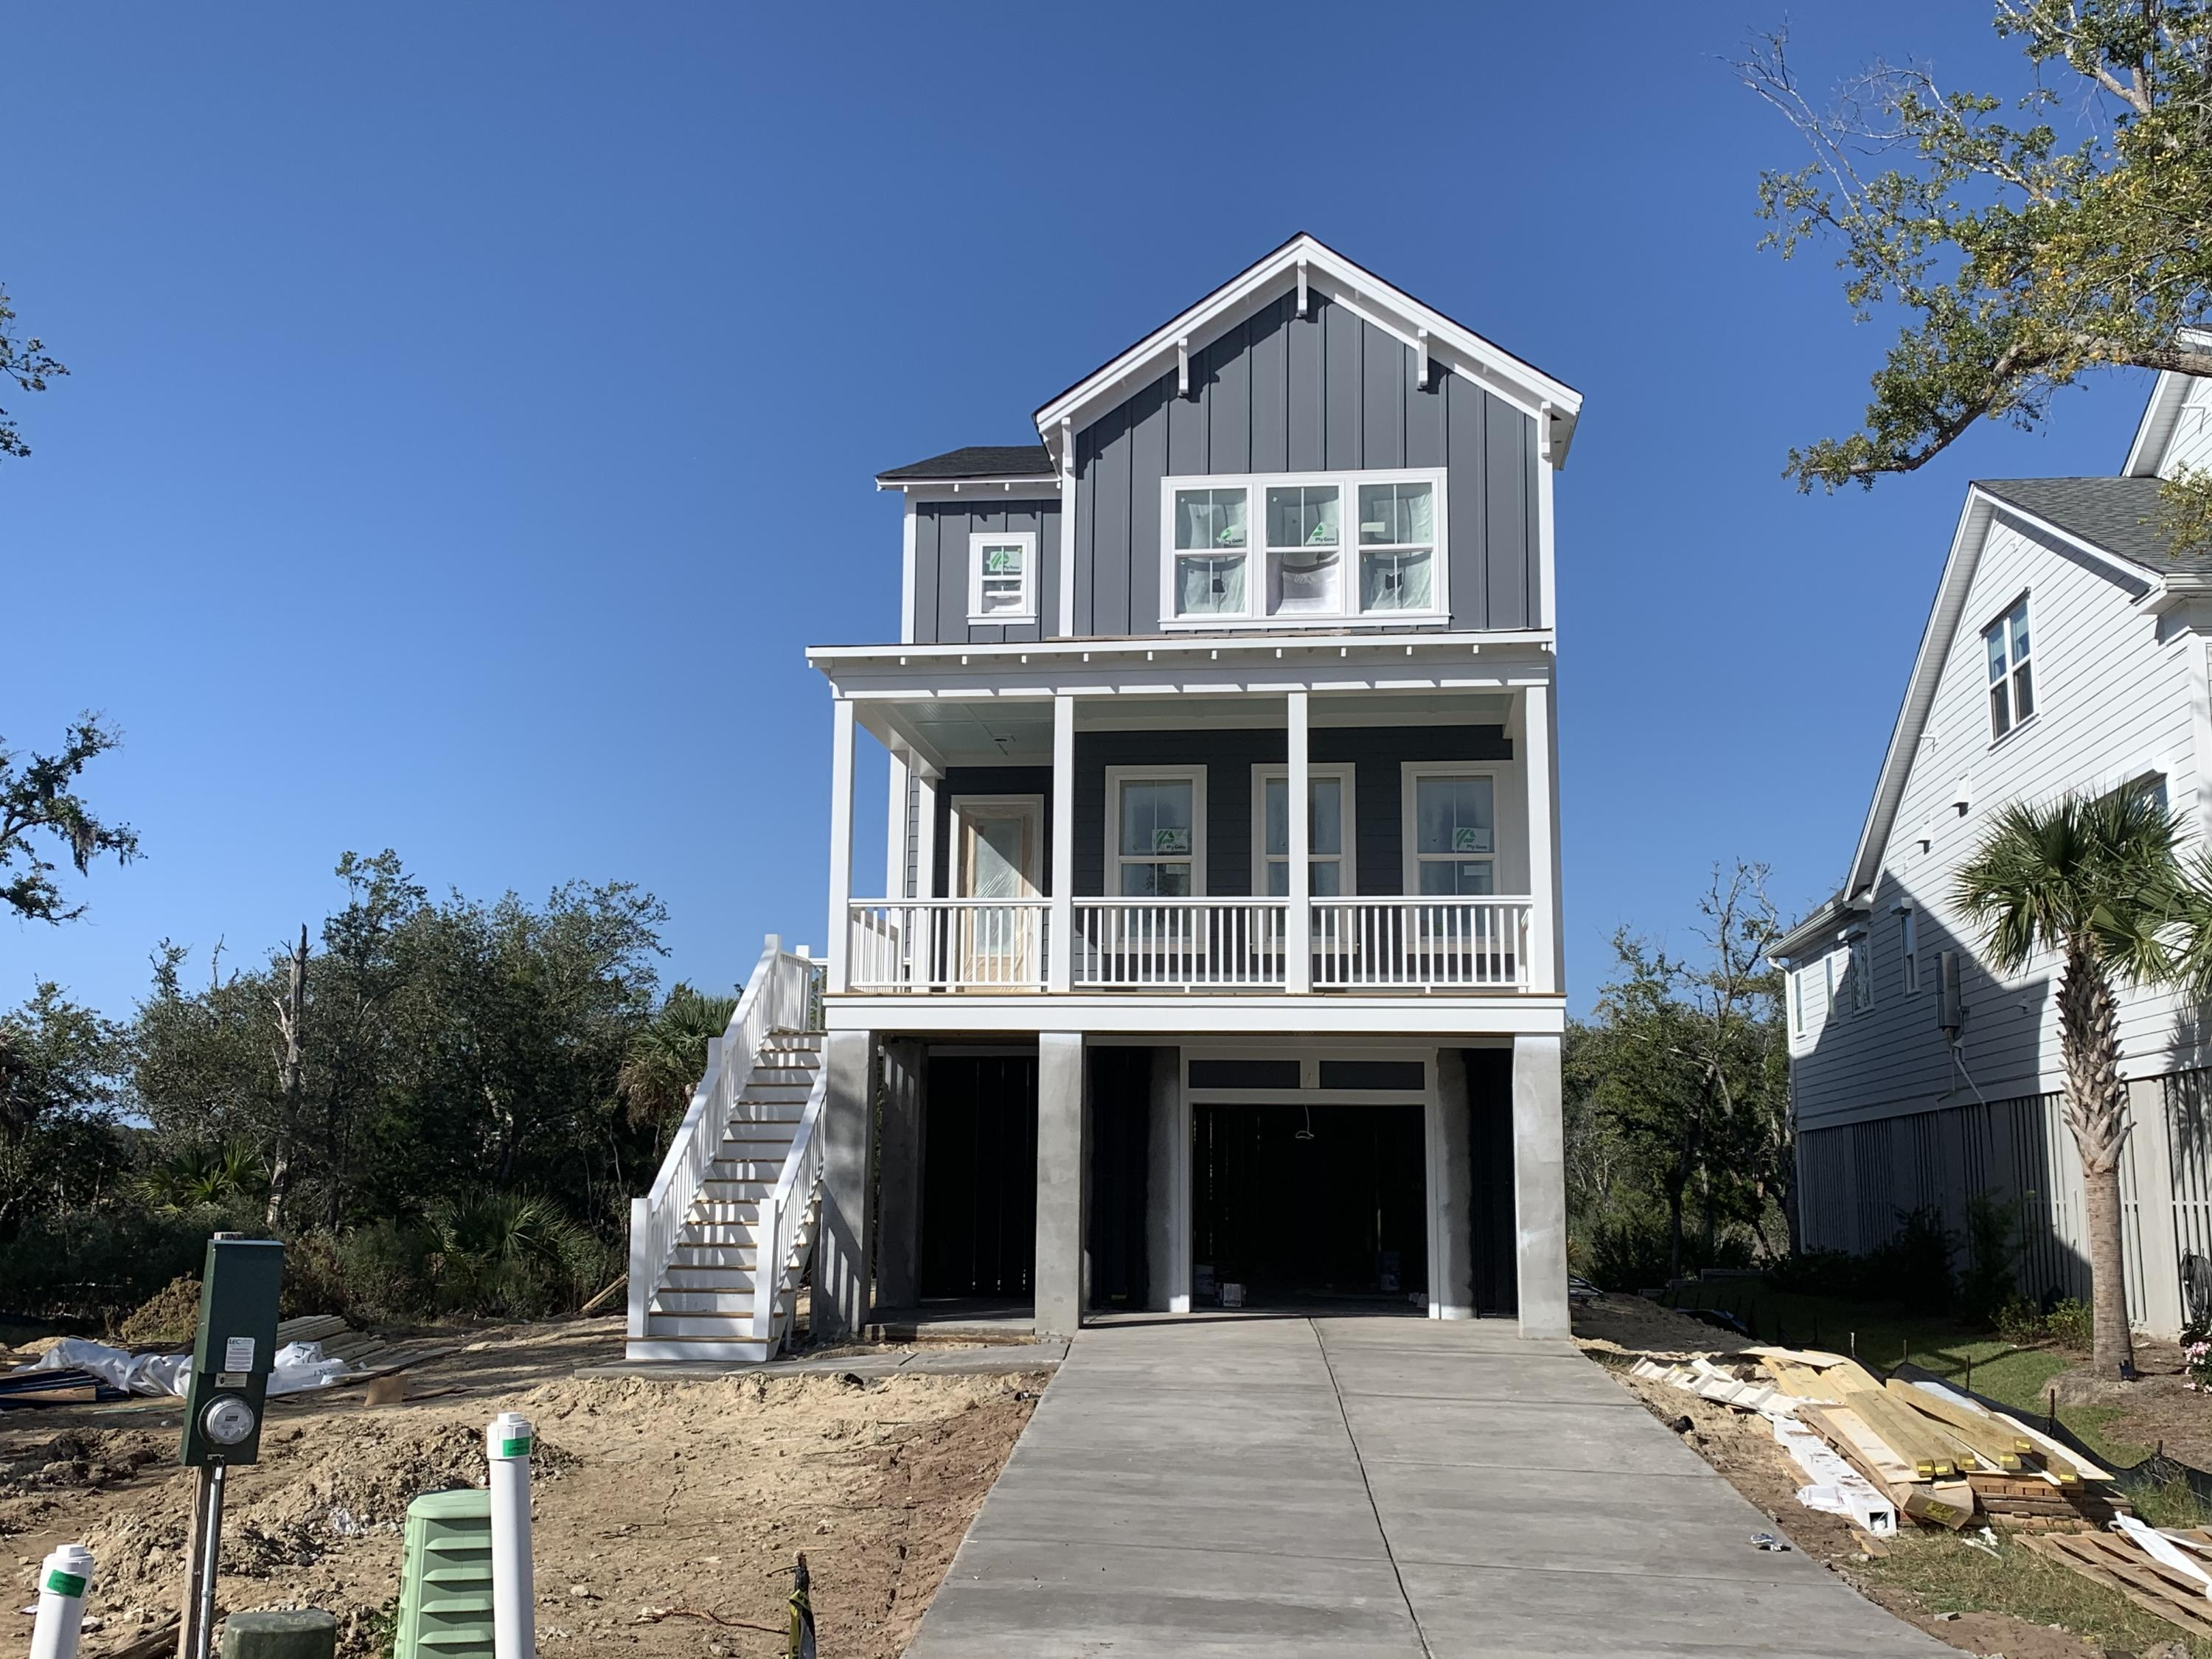 Stratton by the Sound Homes For Sale - 1541 Menhaden, Mount Pleasant, SC - 0